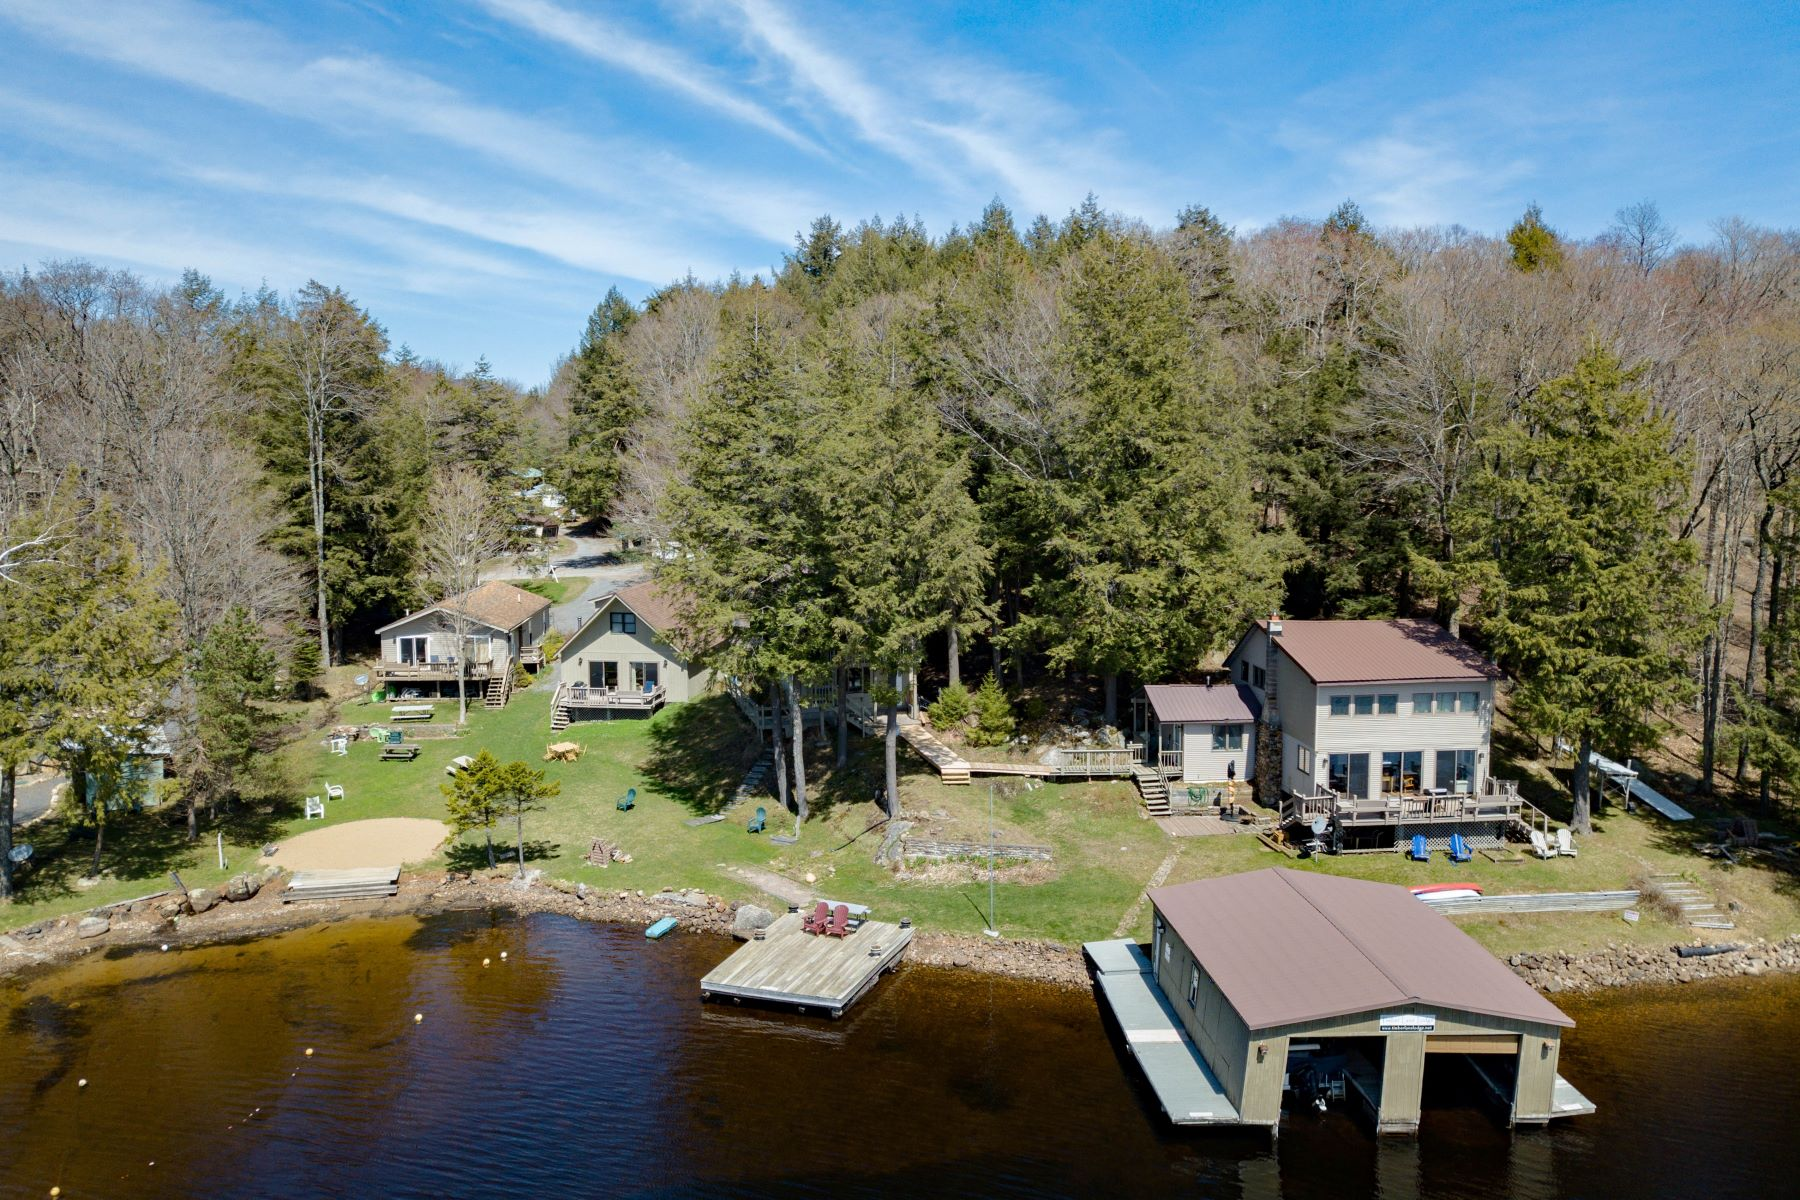 Multi-Family Home for Rent at Multi Family Lakefront Living 251 Petrie Road, Old Forge, New York 13420 United States